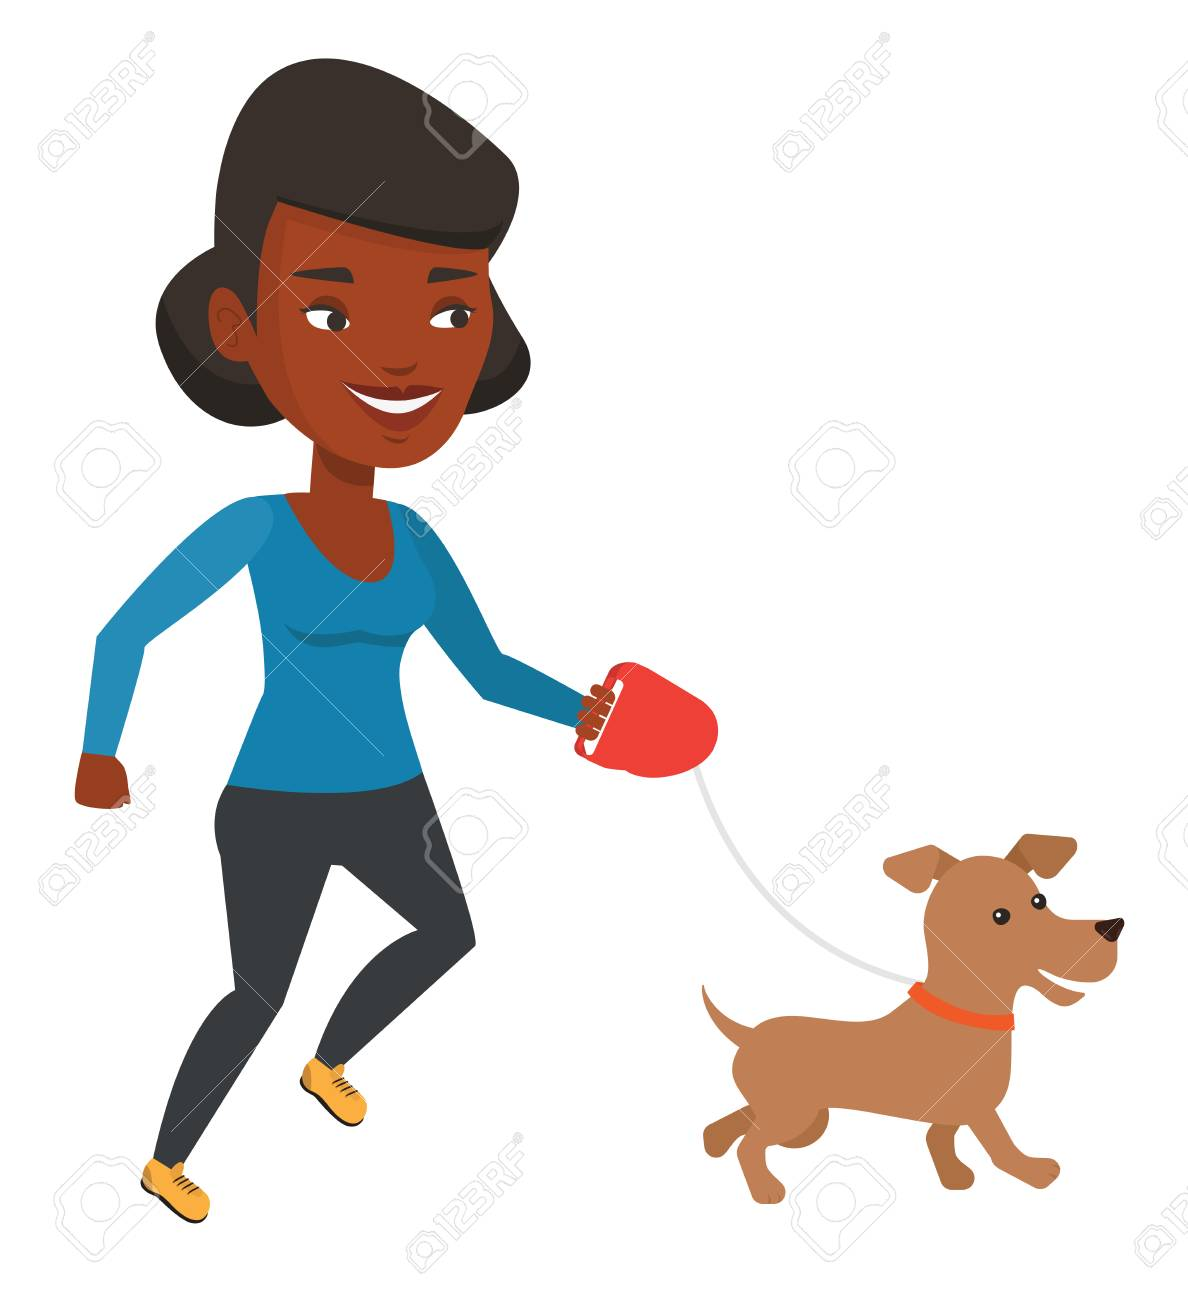 a2f8d7ef5eafd African-american woman with her pet. Happy woman taking dog on walk. Woman  walking with her small dog. Smiling girl walking a dog on leash.